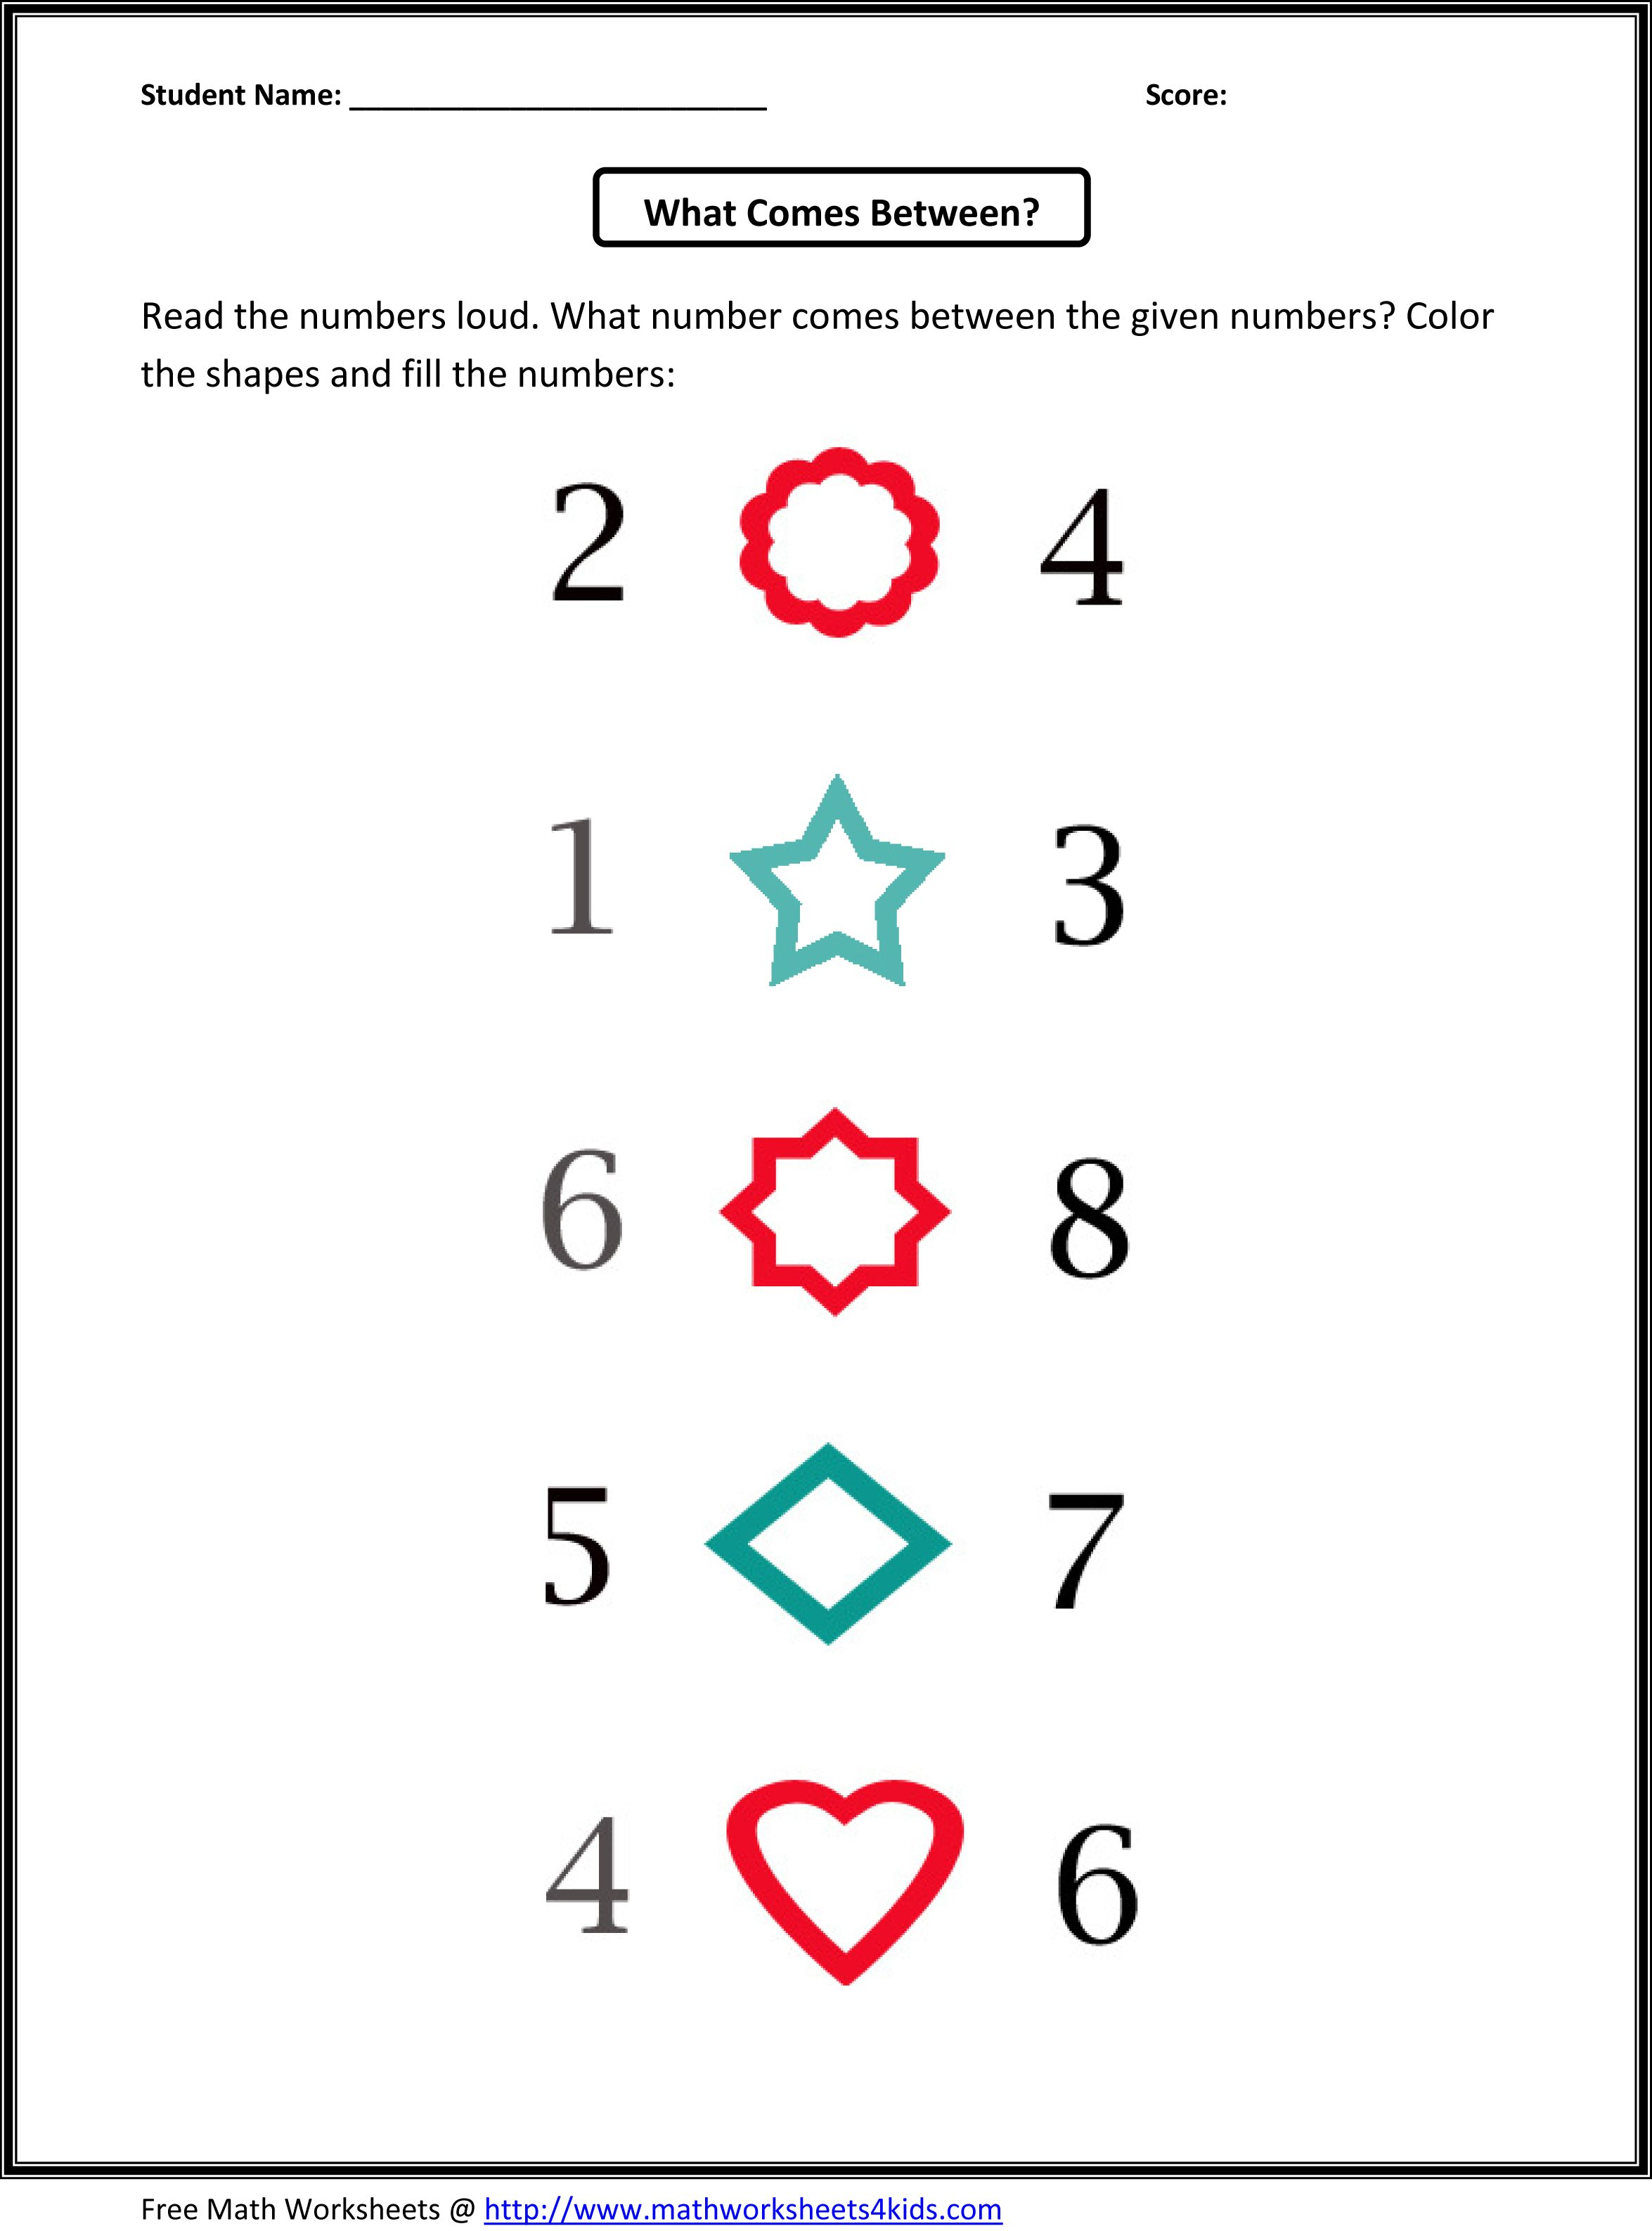 Kindergarten Counting Worksheets 110 – Pattern Maths Worksheets